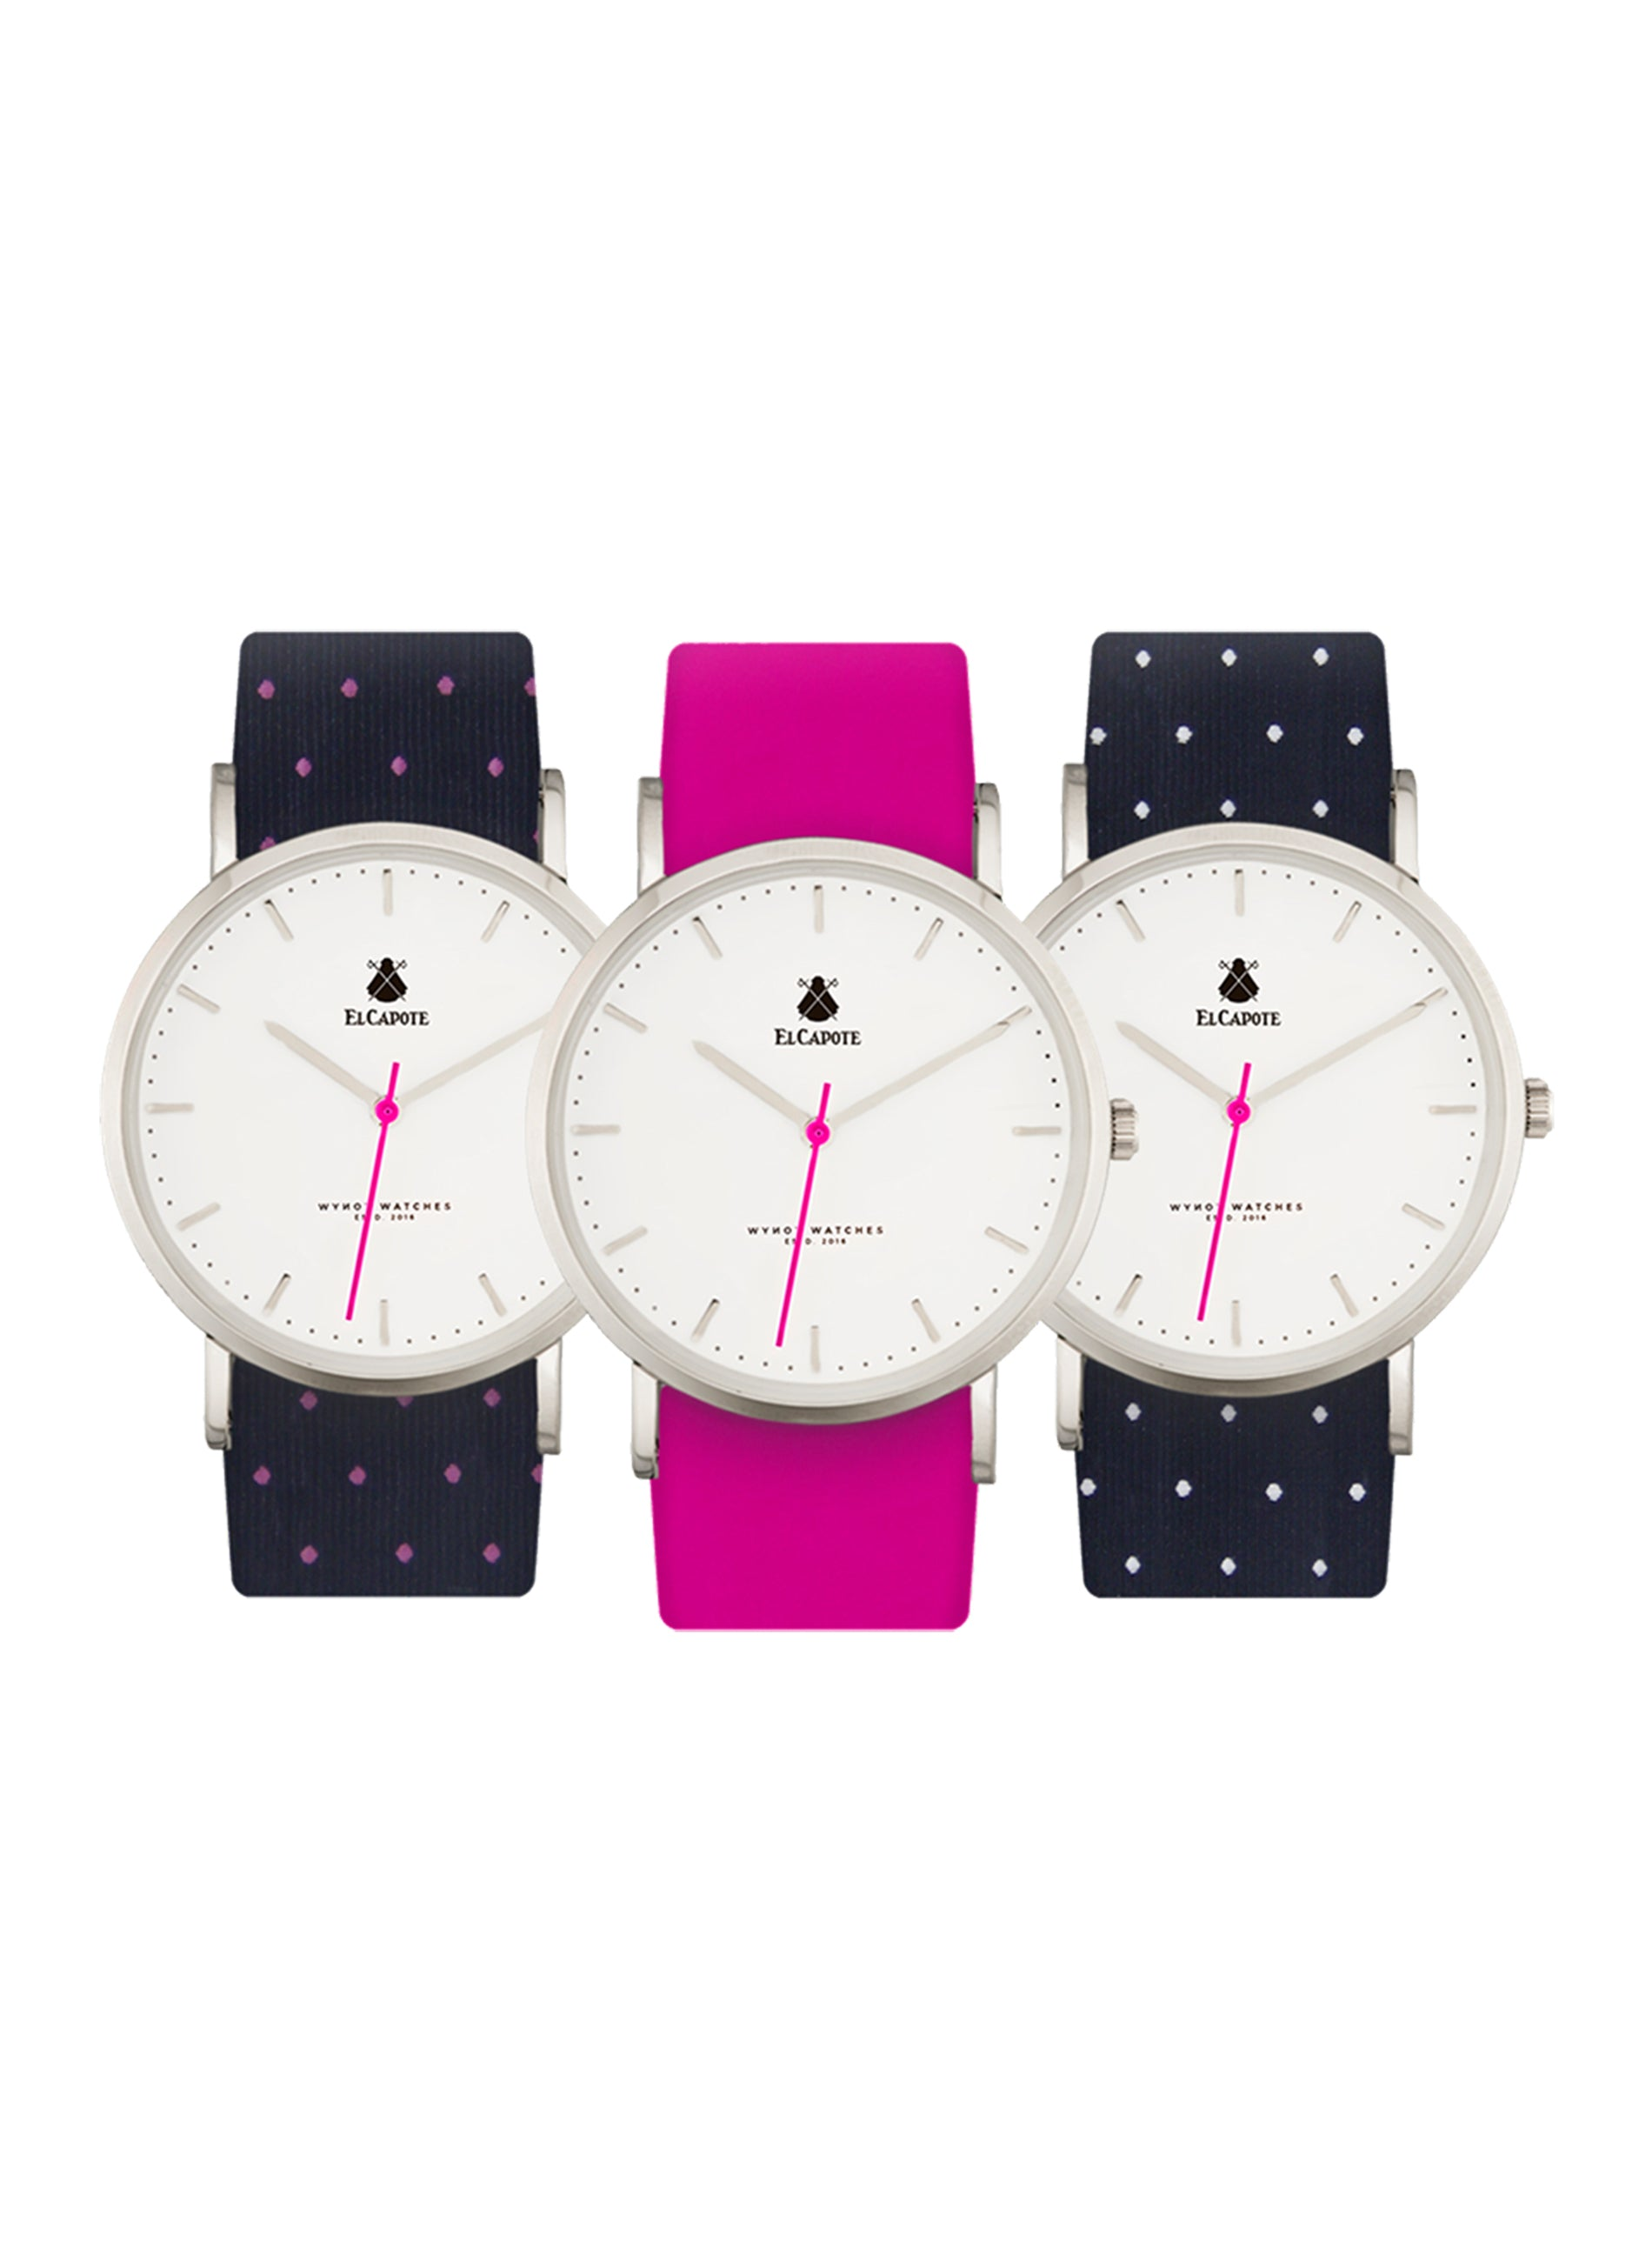 CLOCK BUTTON WATCH UNISEX EL CAPOTE